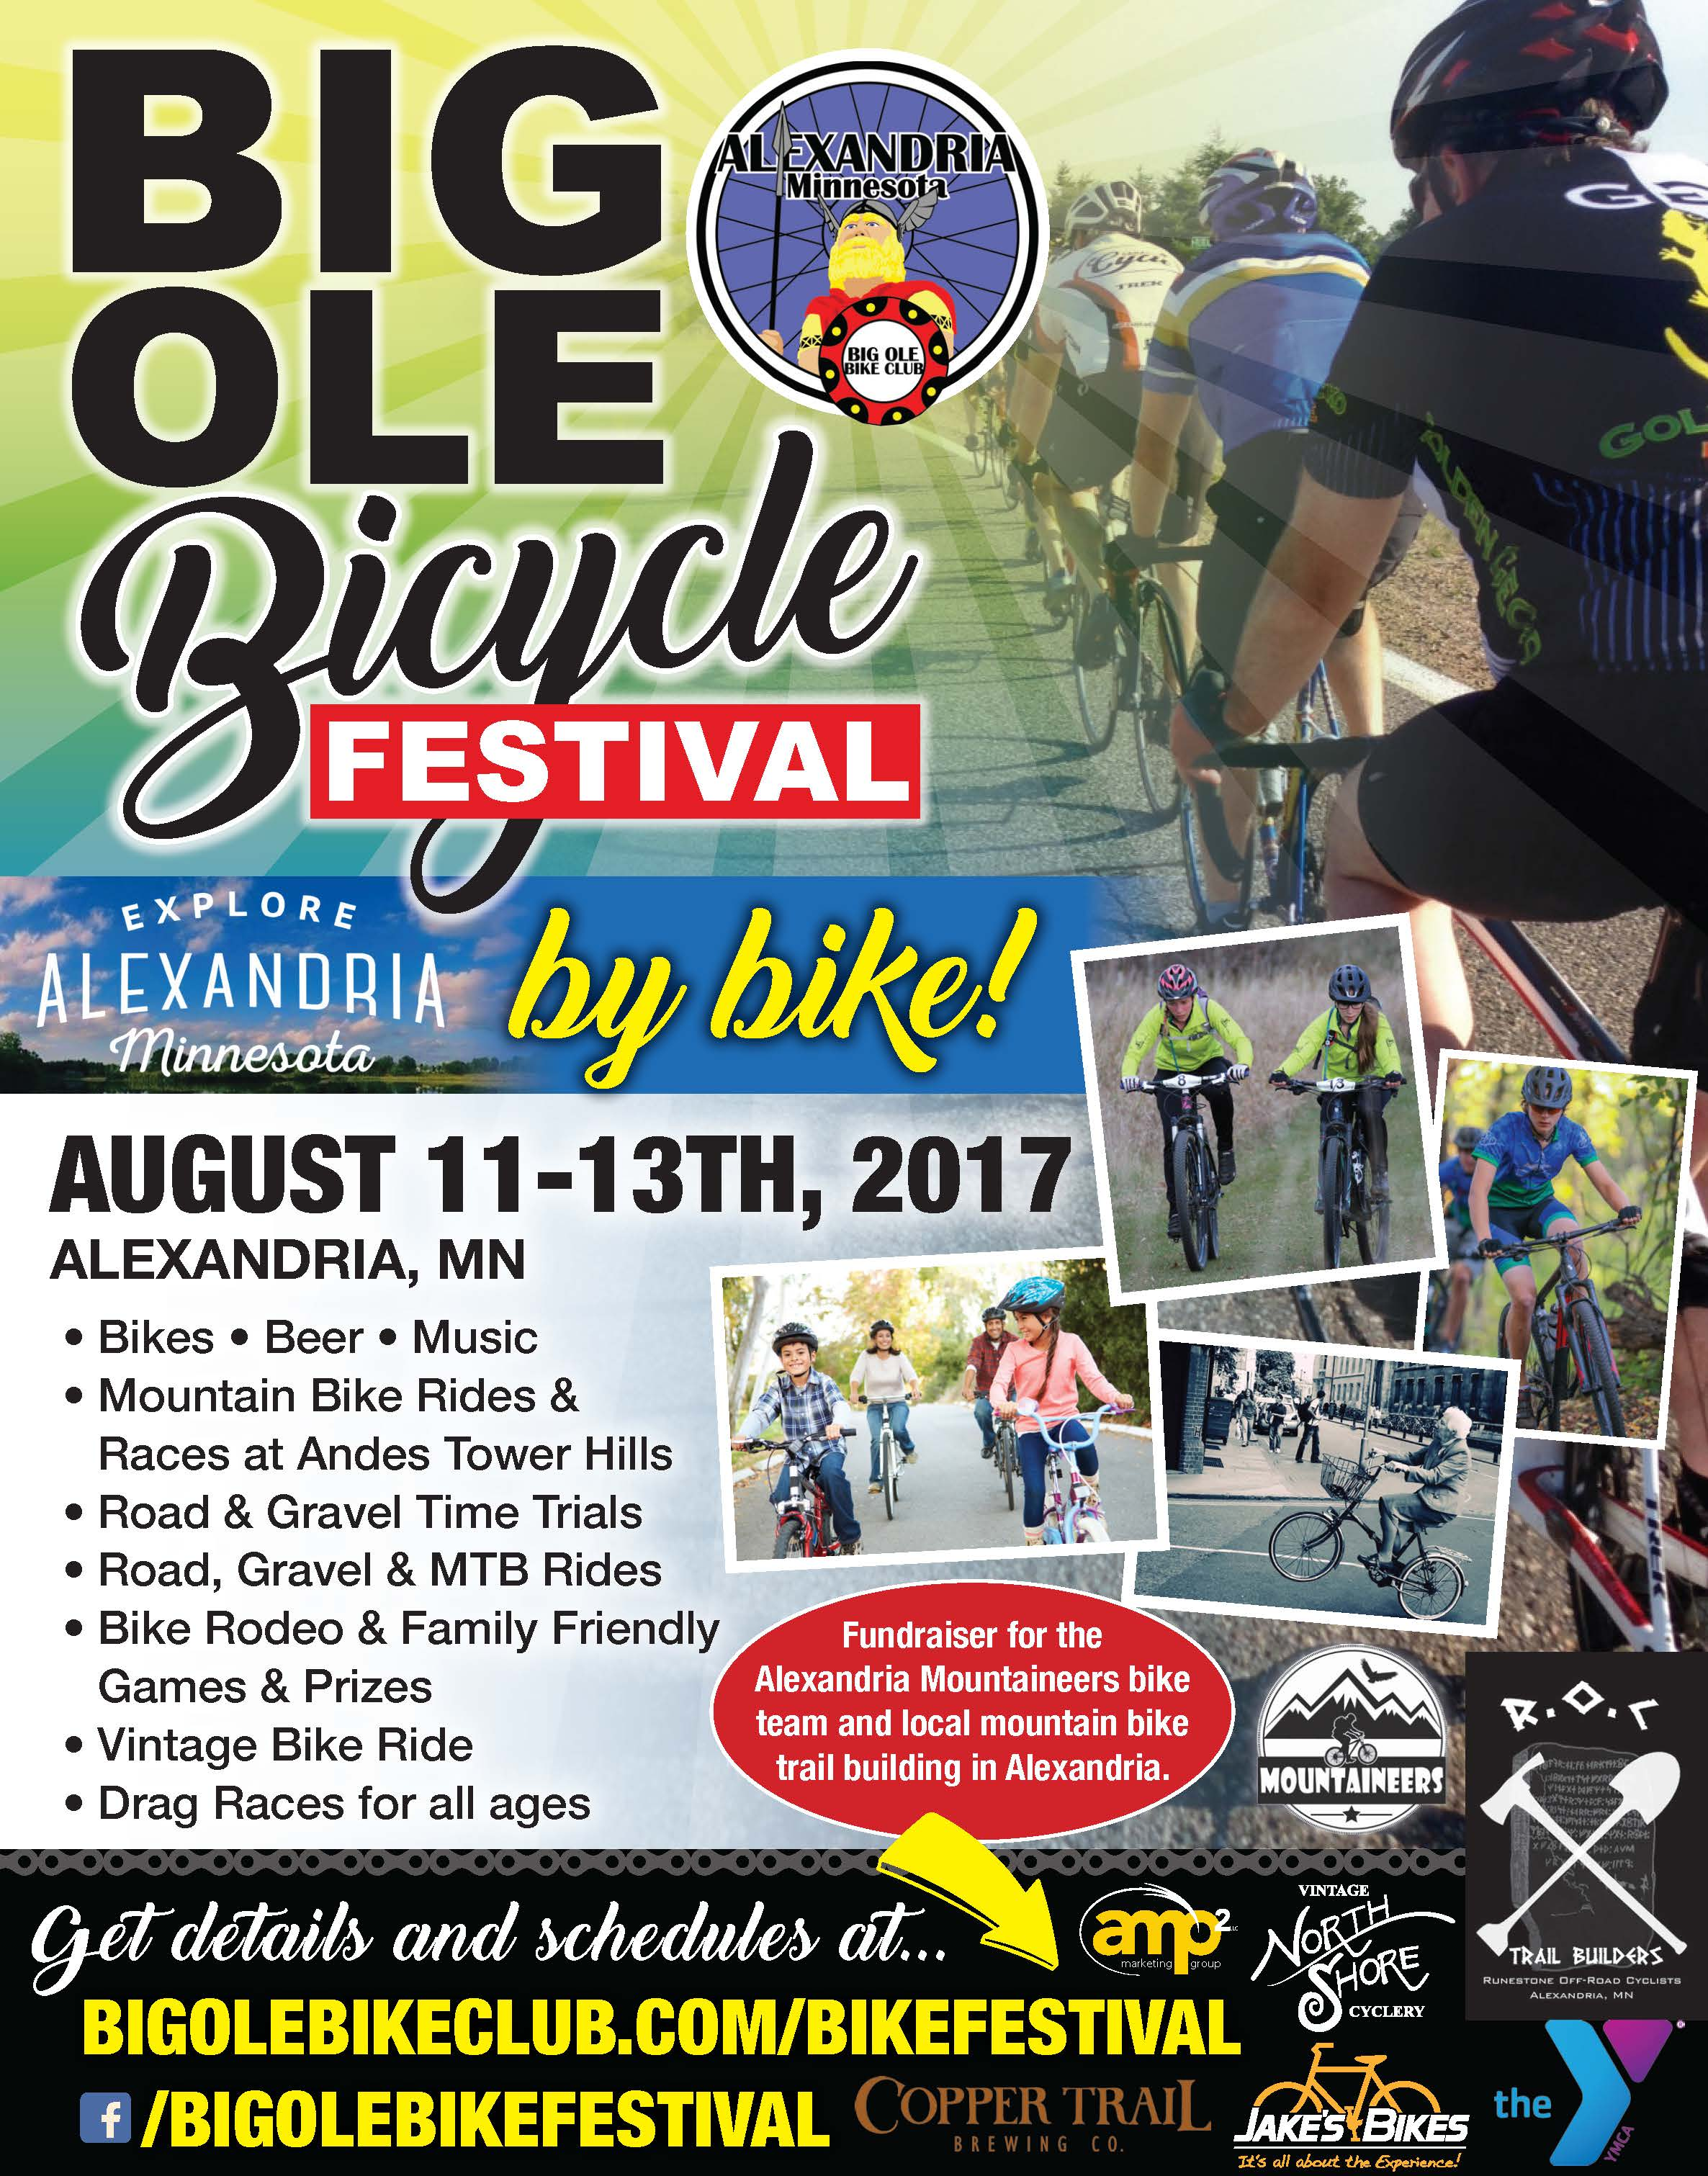 Big Ole Bicycle Festival - Central Lakes Trail